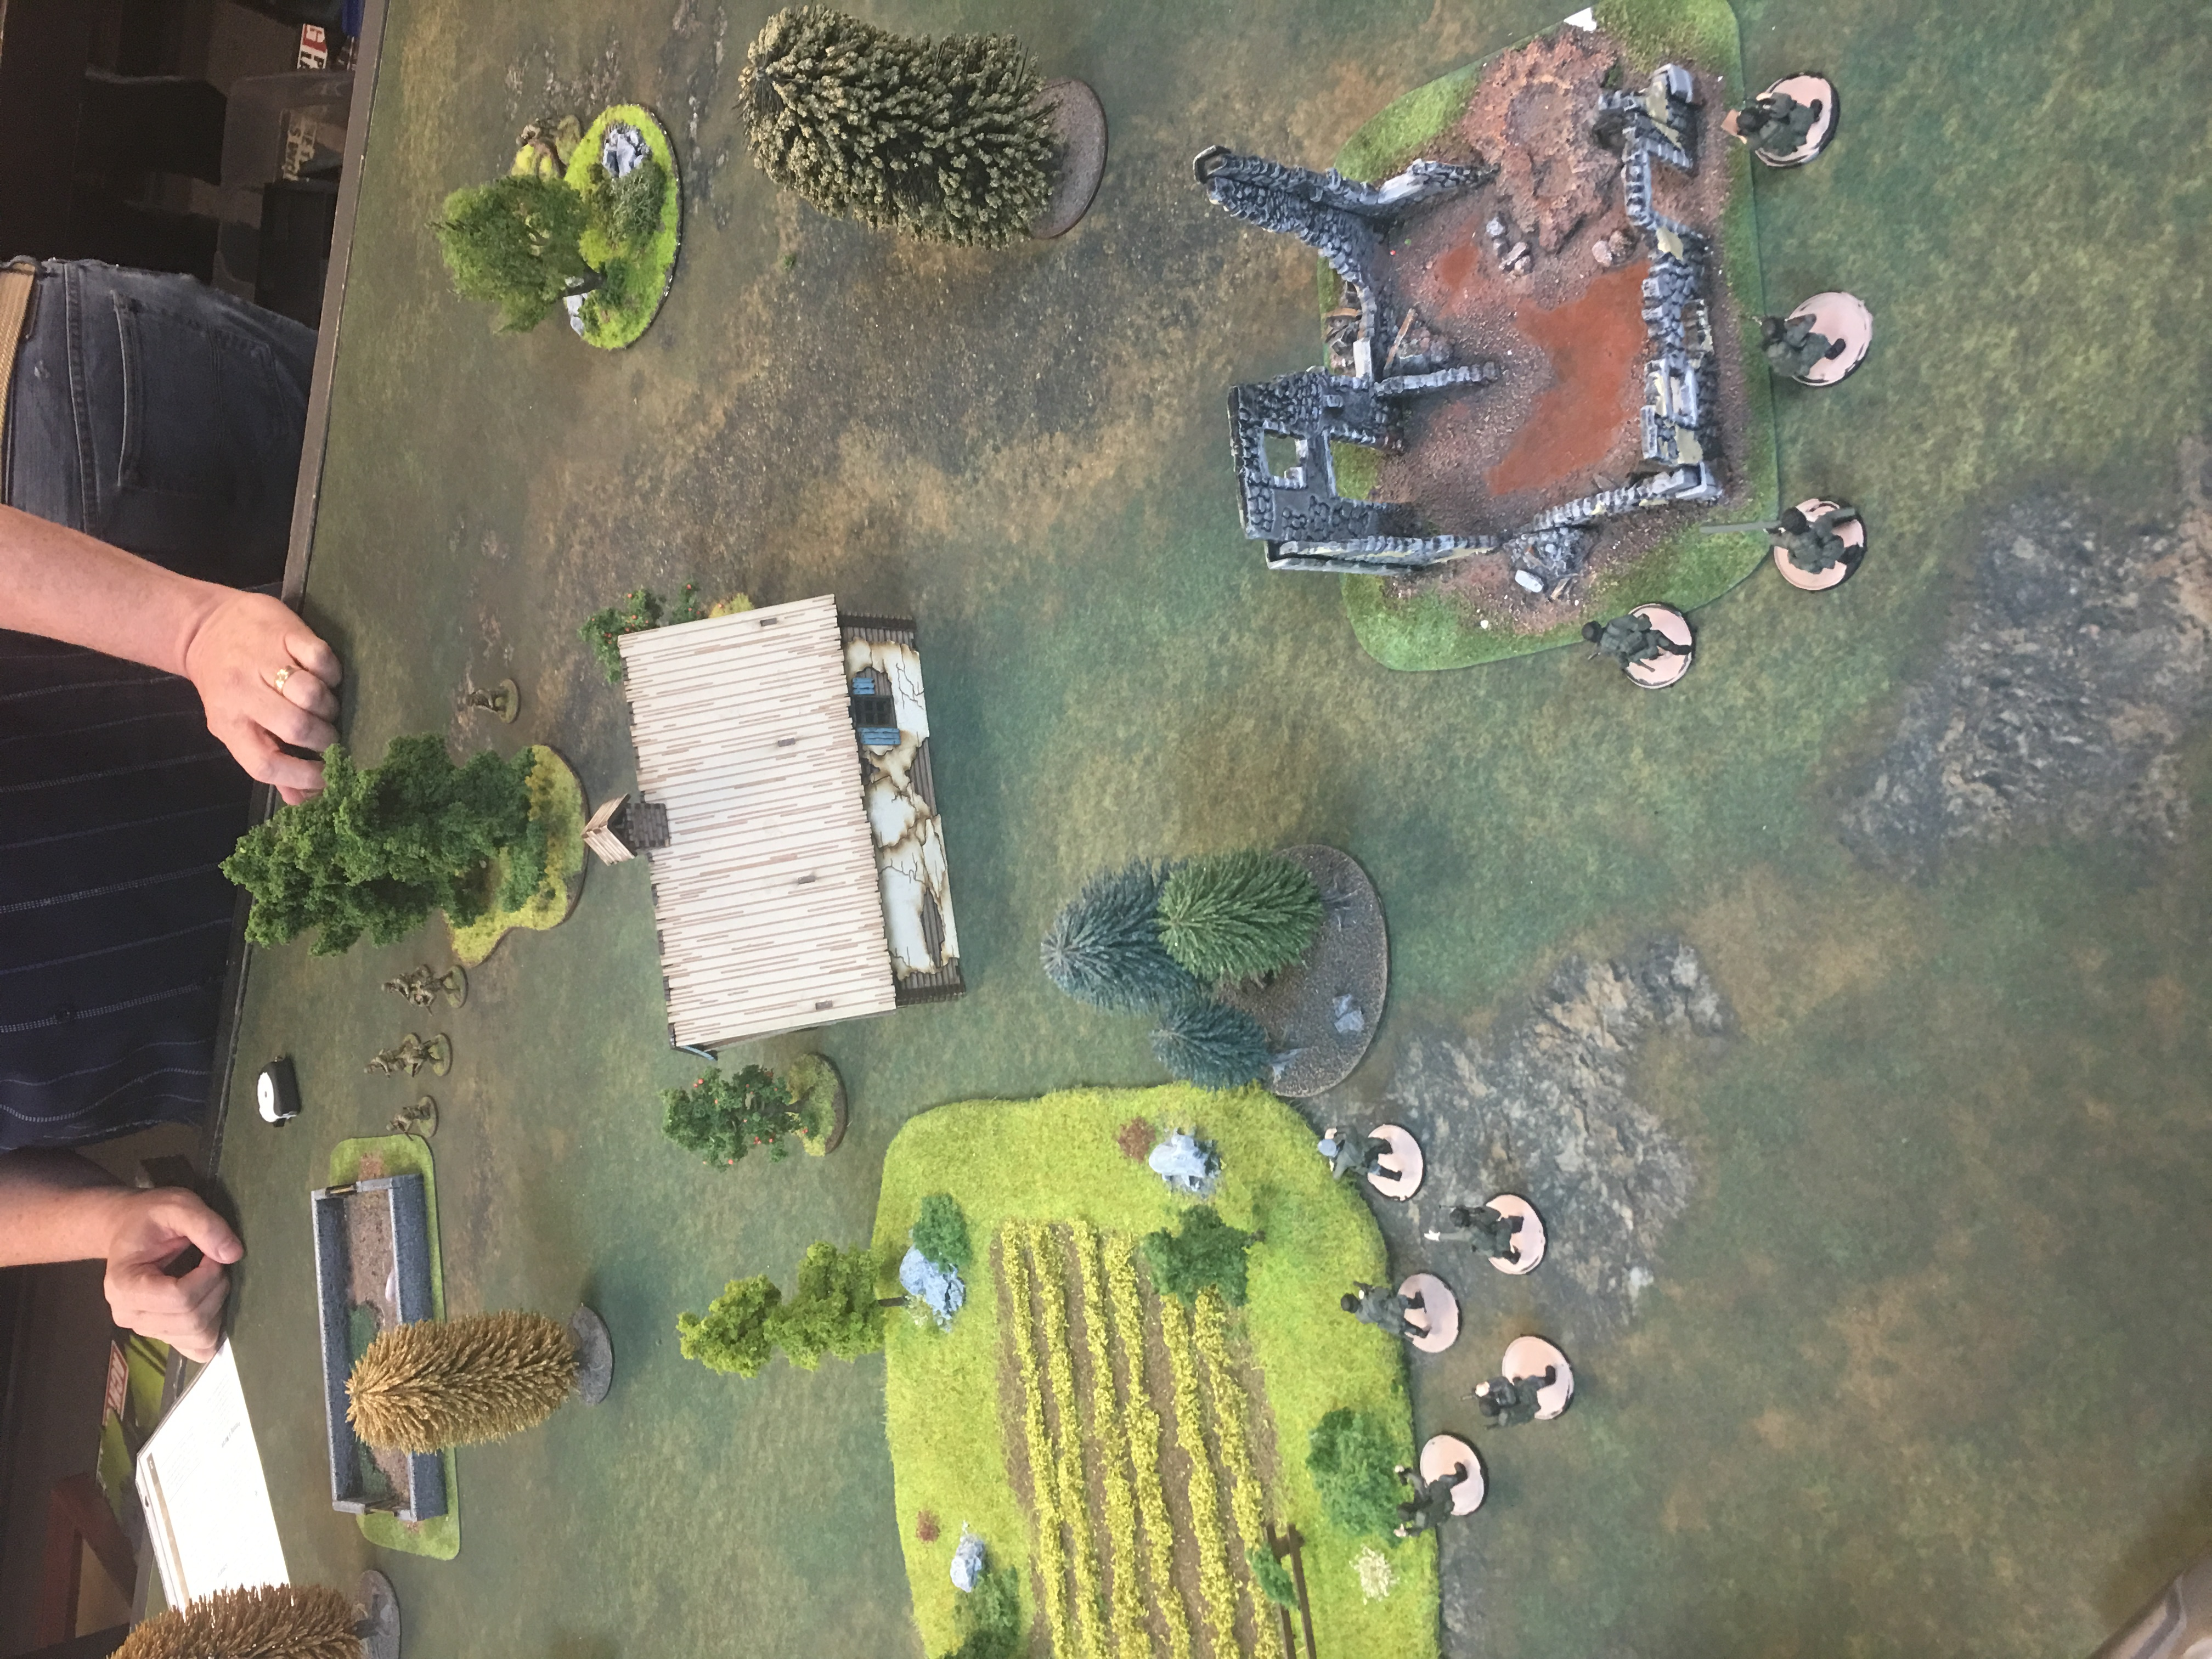 352nd Pionier Battalion versus The Furious in a fierce infantry engagement